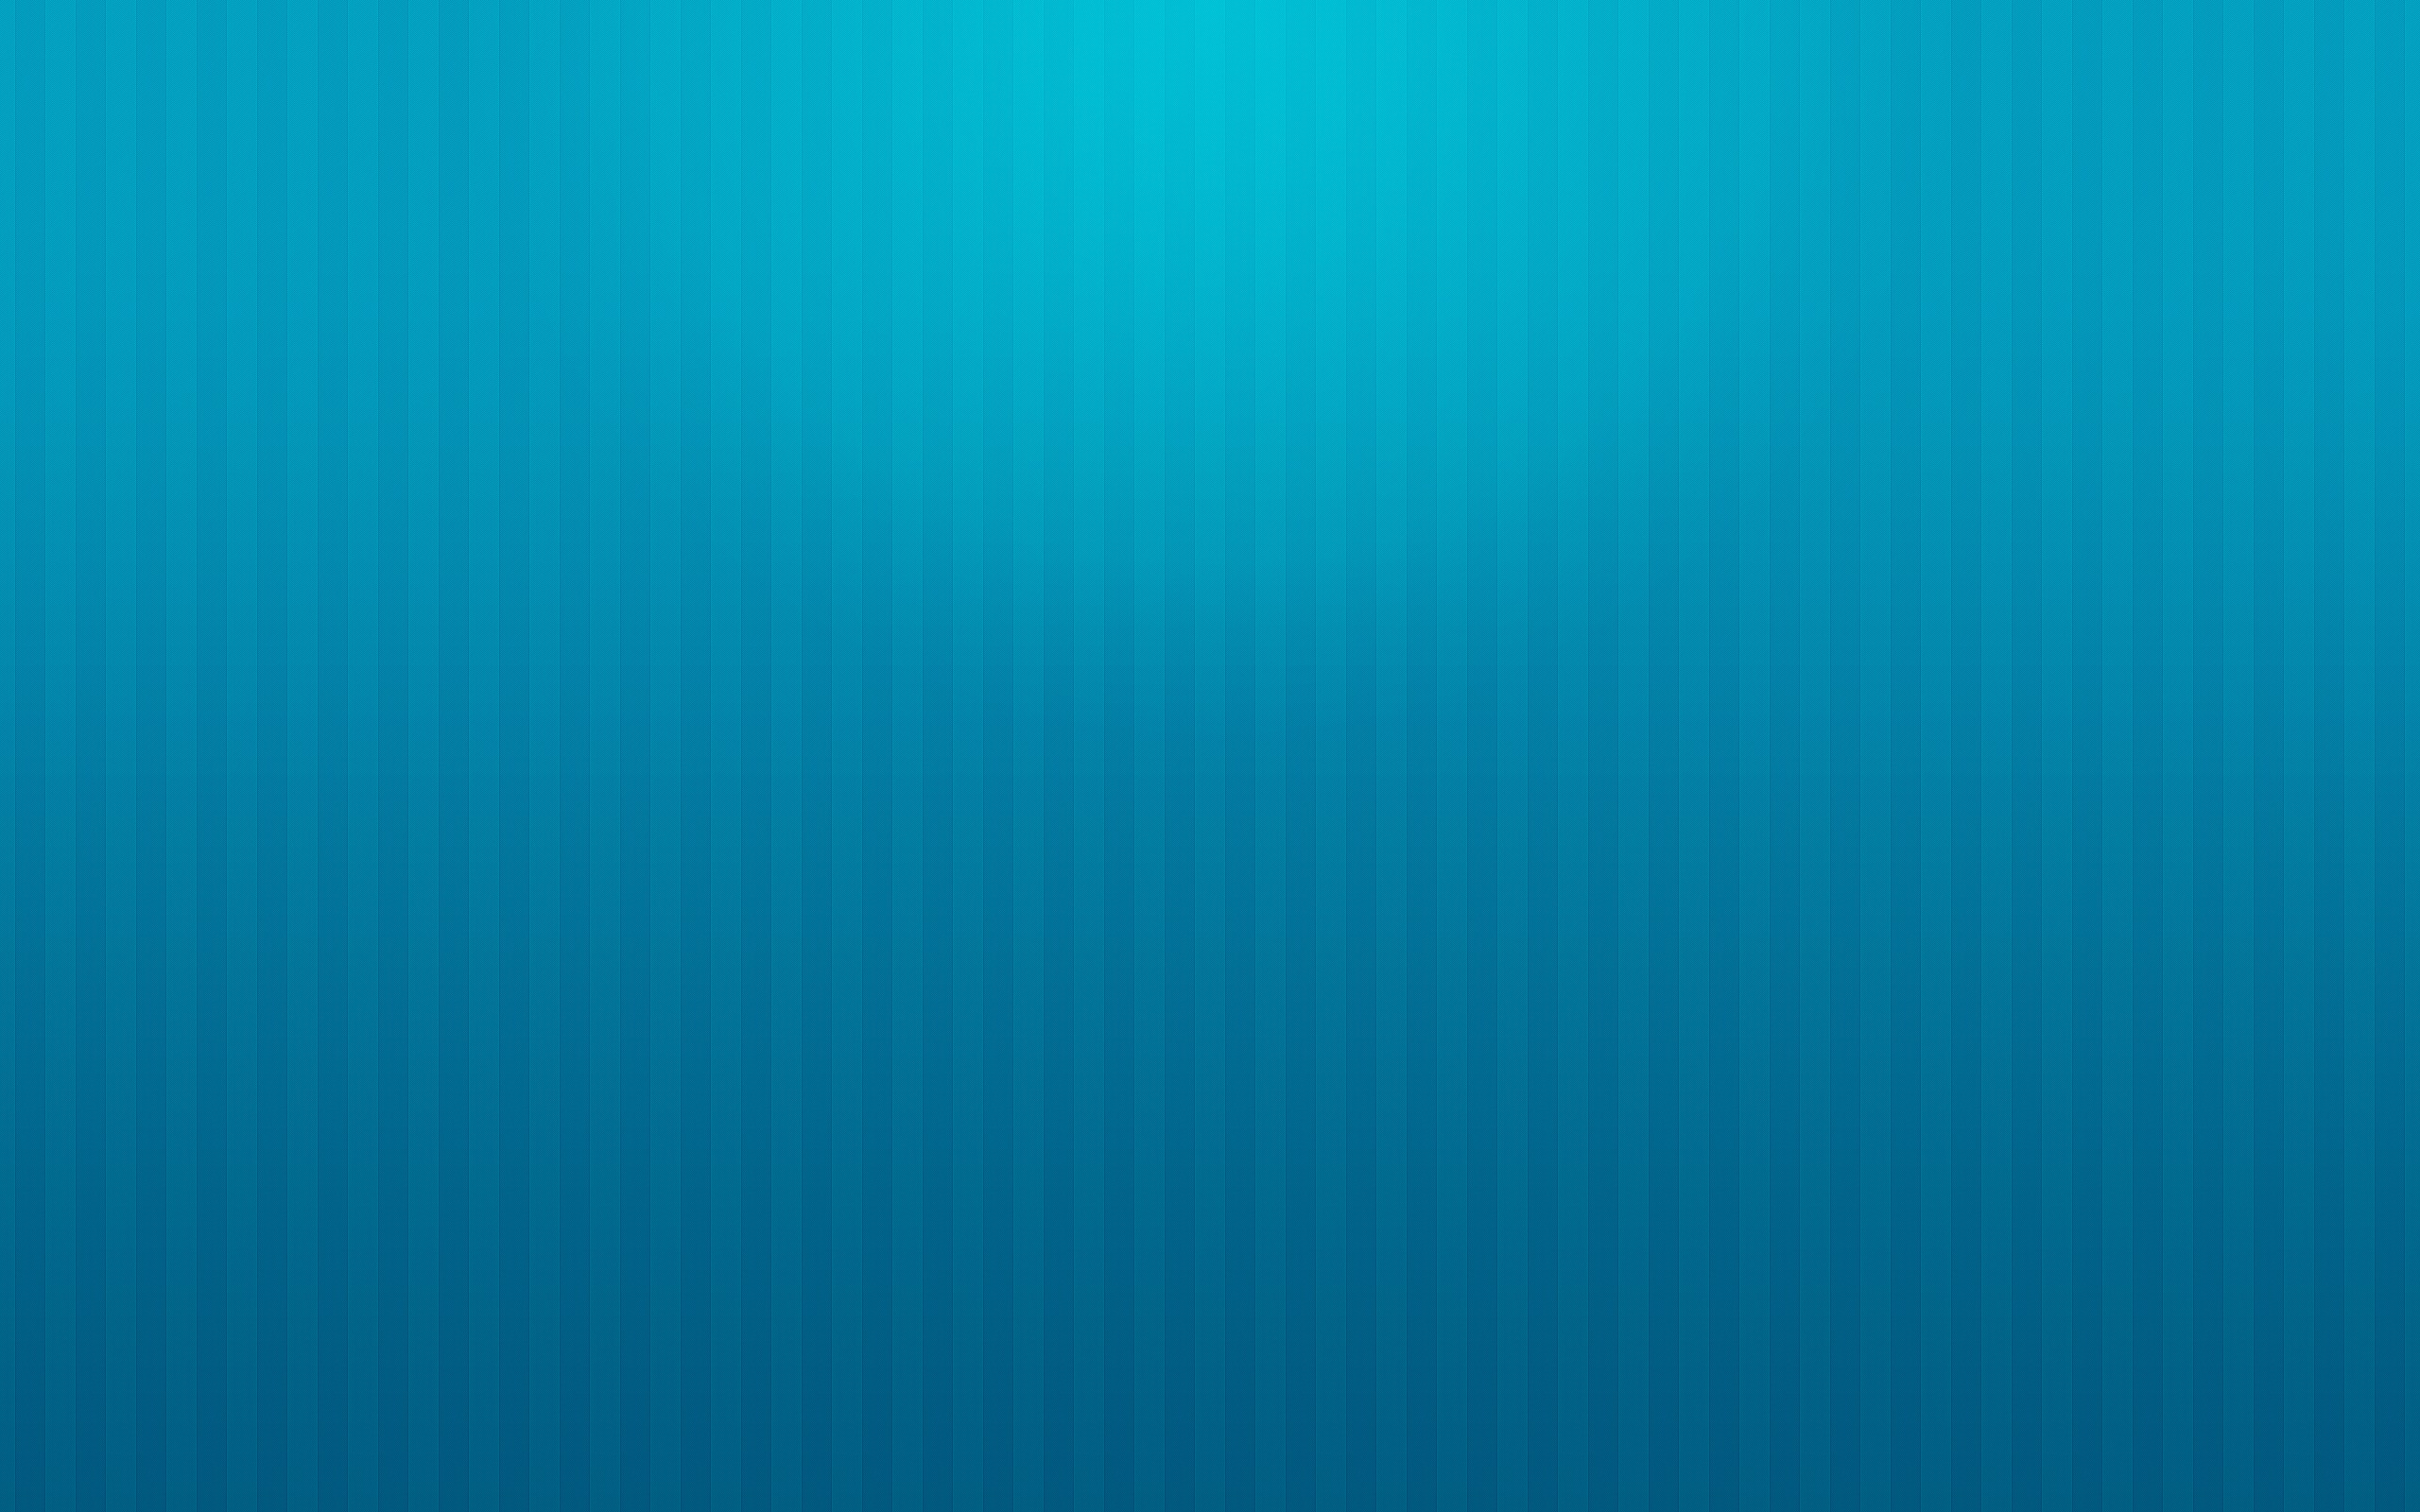 hd plain backgrounds light hd wallpapers on picsfair com